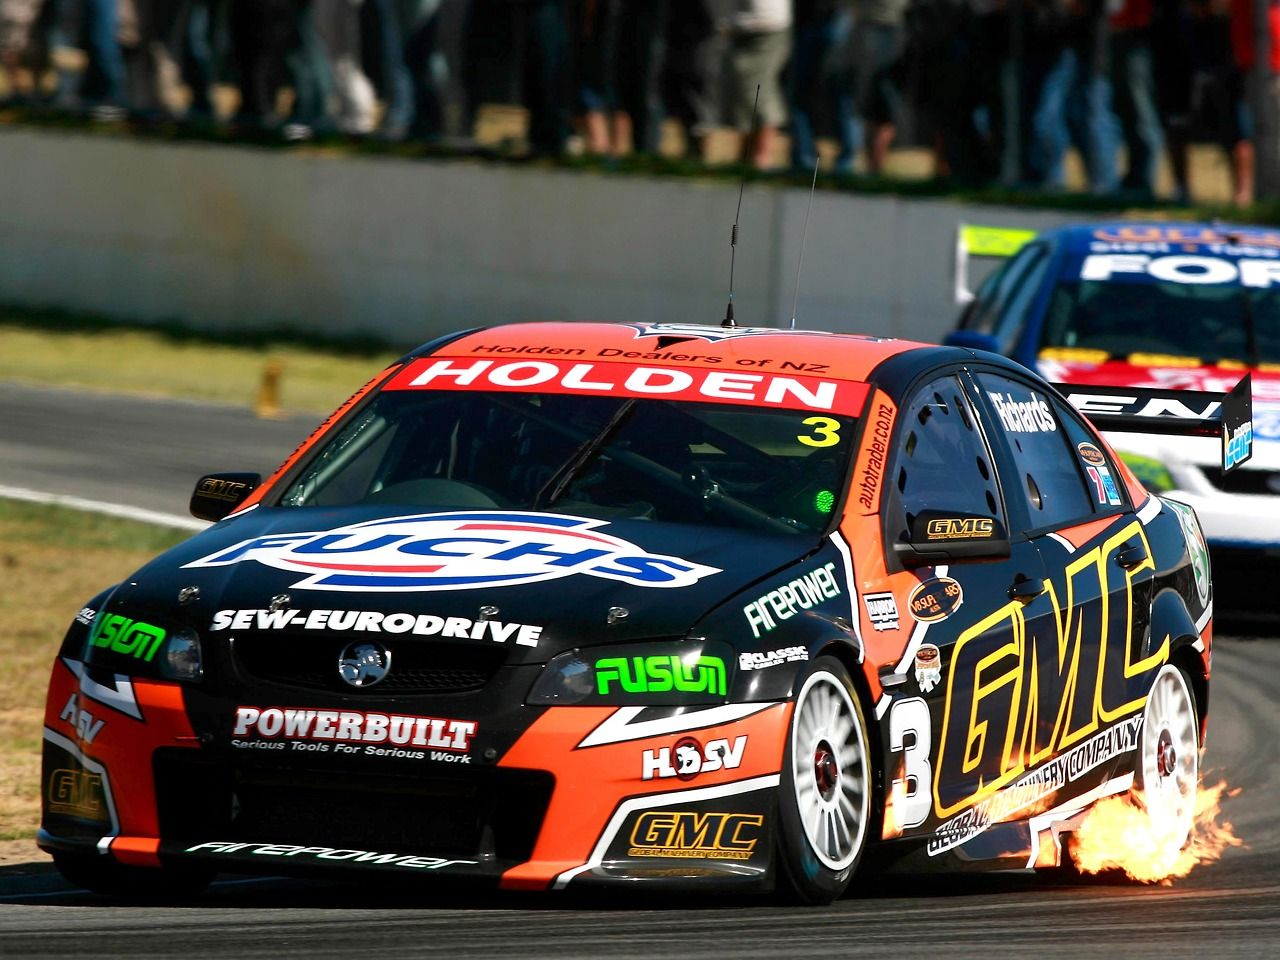 Holden Commodore race car | V8 Supercars | Pinterest | Cars, Blog ...